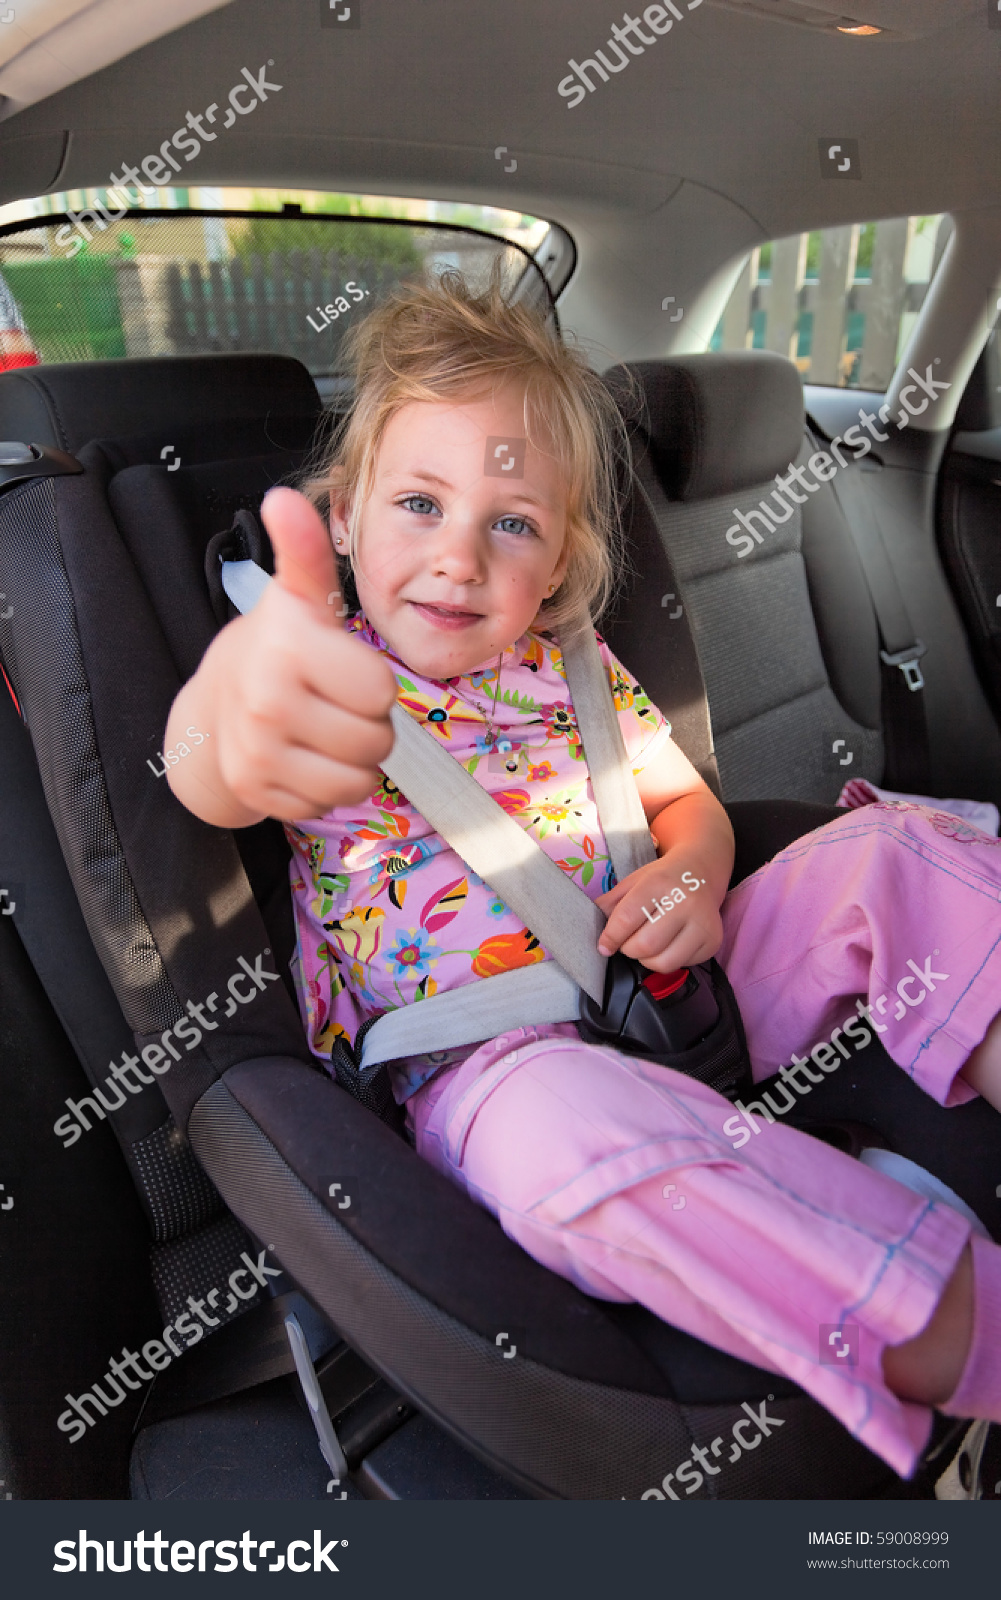 Car Value Website >> Small Child Sitting In A Car Seat In The Car Stock Photo ...